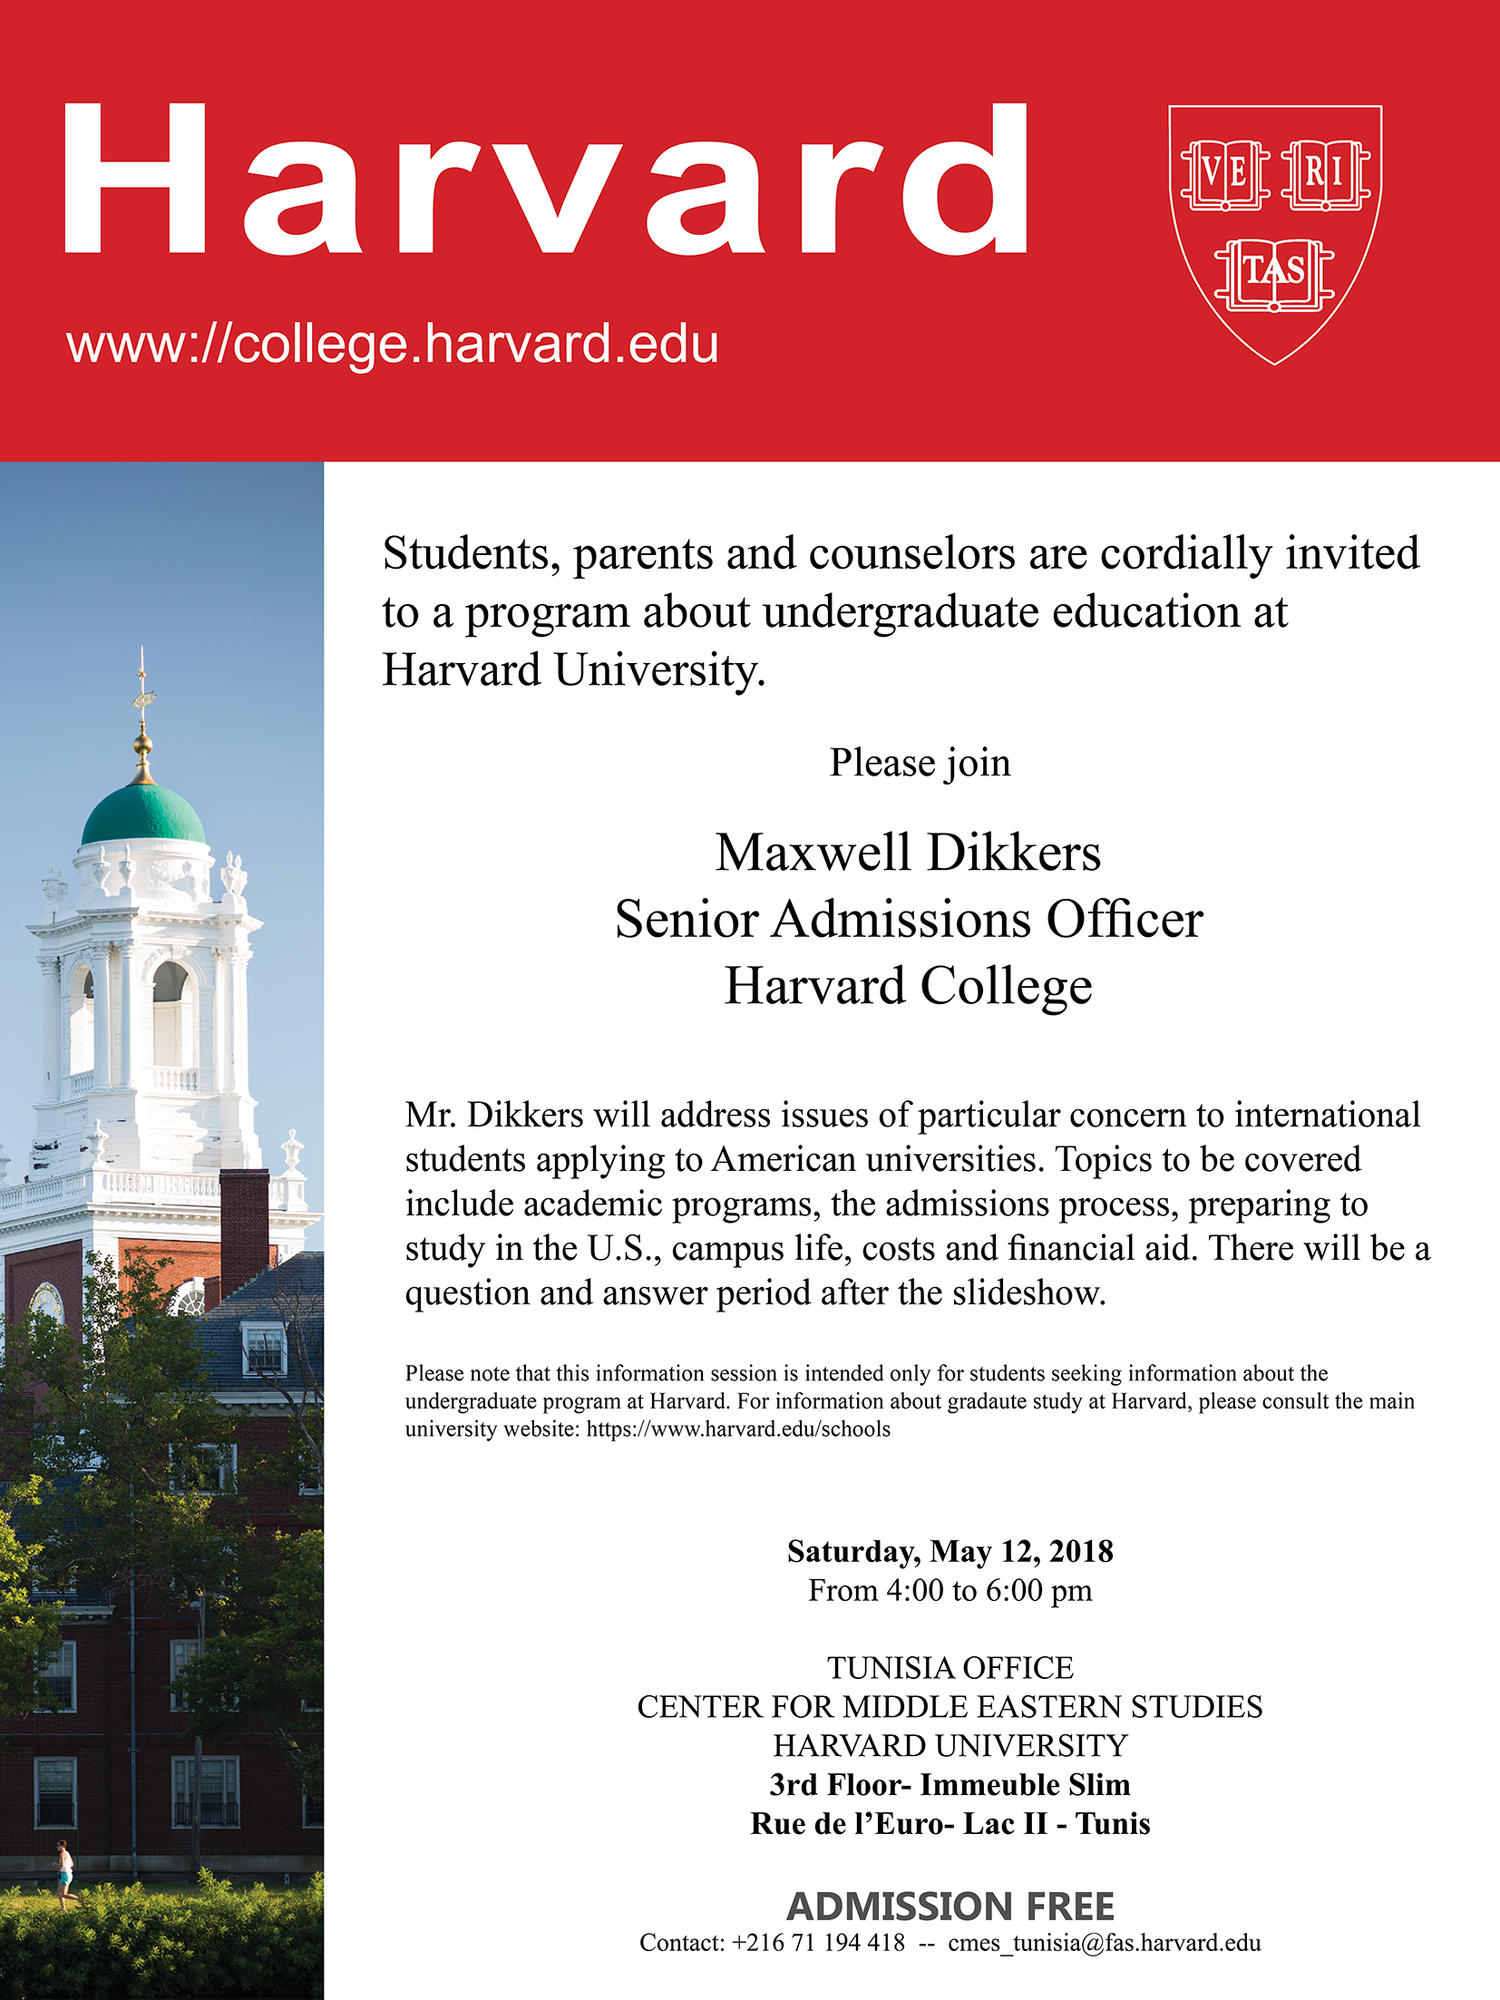 harvard_college_event_poster